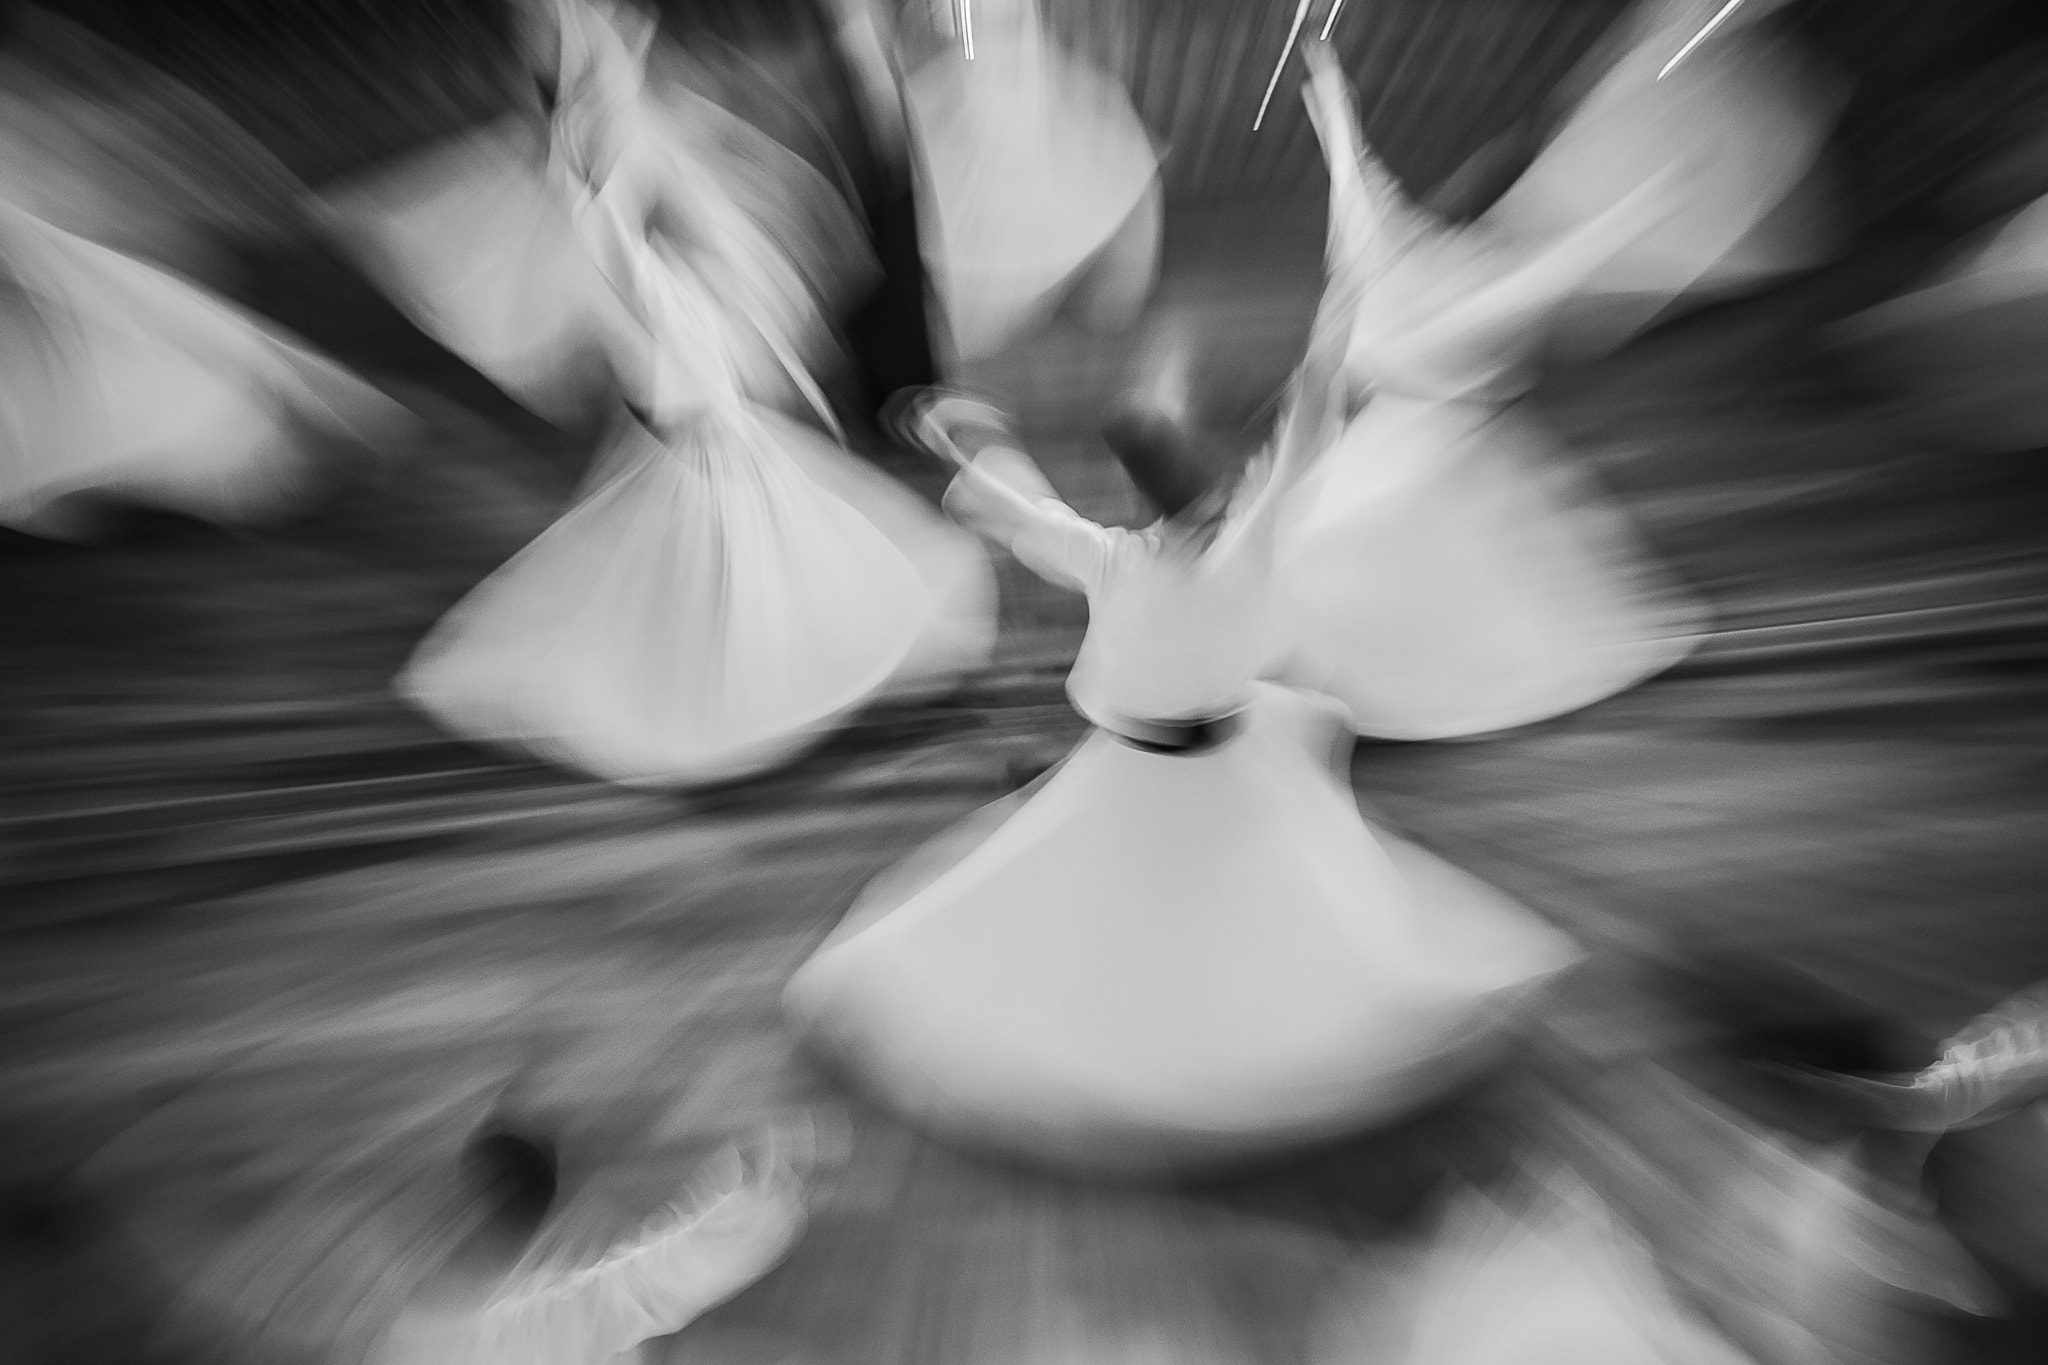 Photograph Dervishes by Masis Usenmez on 500px